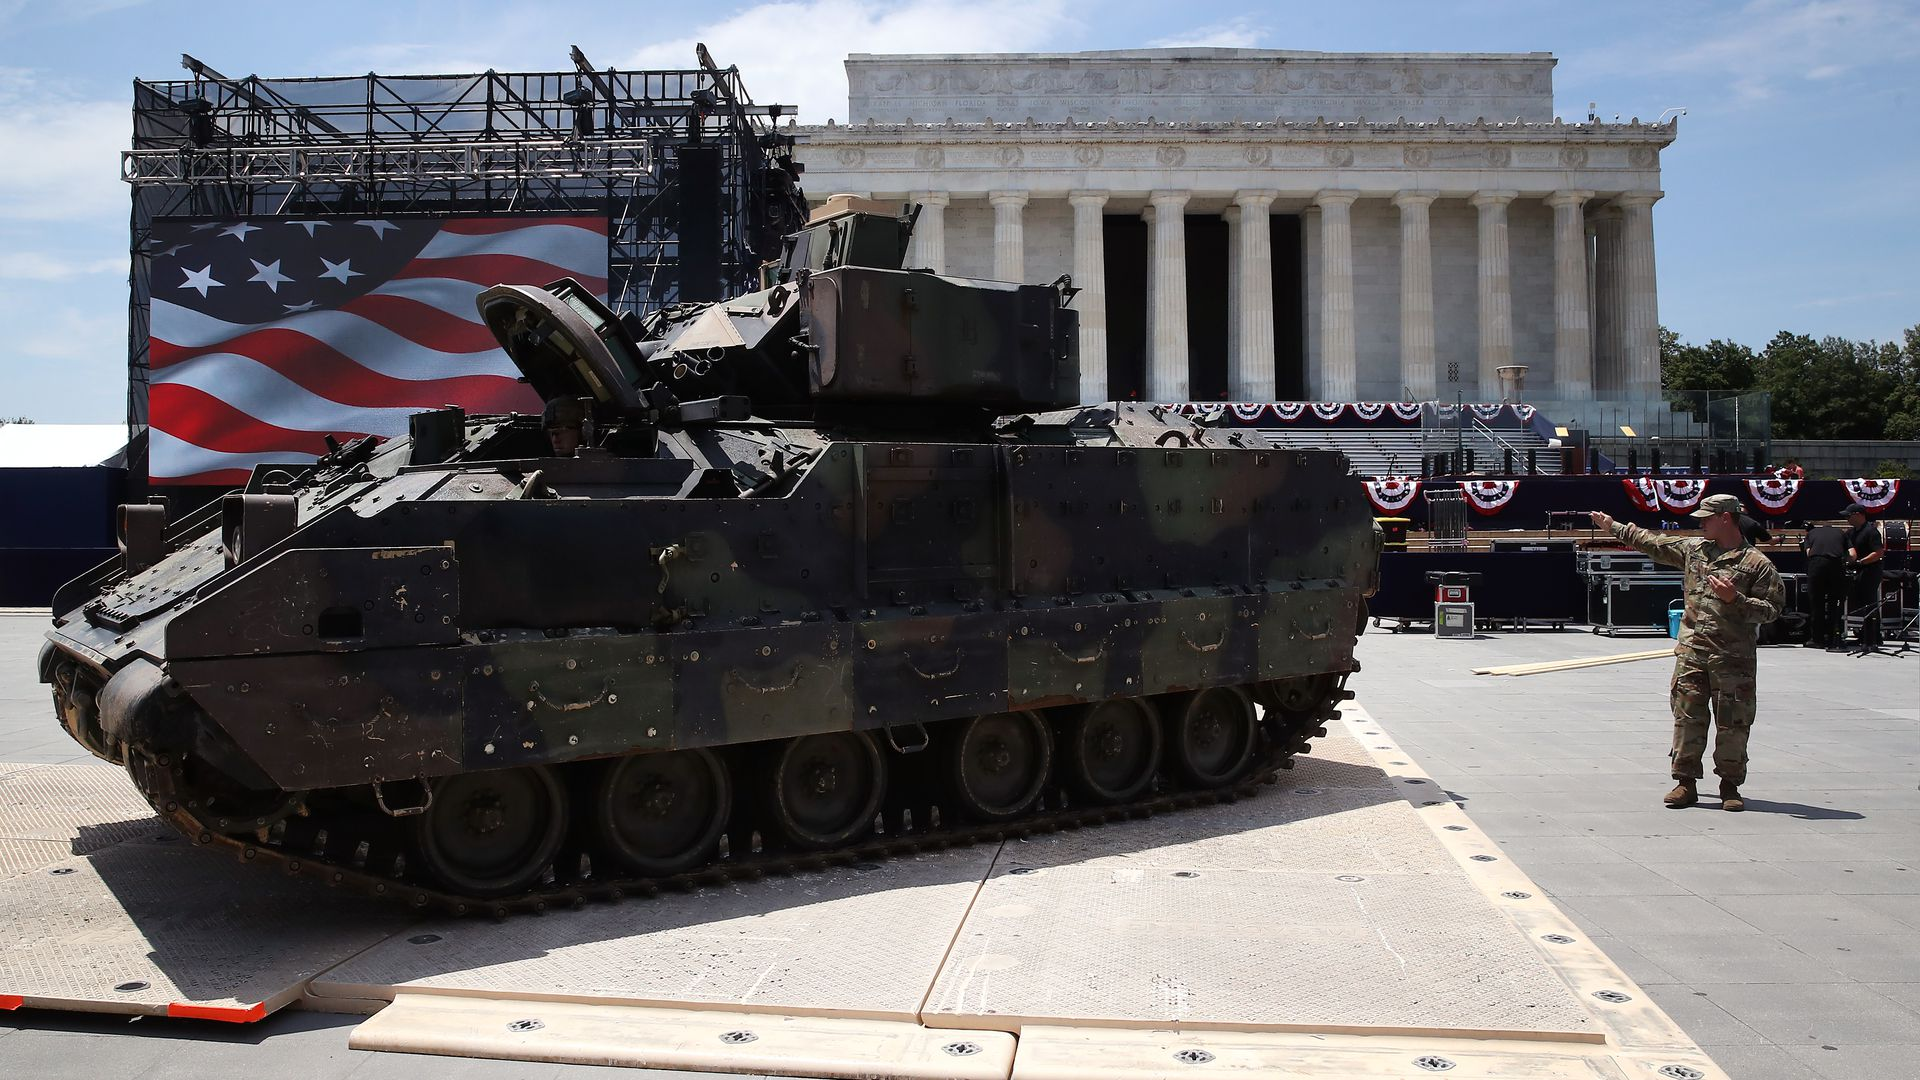 Members of the U.S. Army park an M1 Abrams tank in front of the Lincoln Memorial.